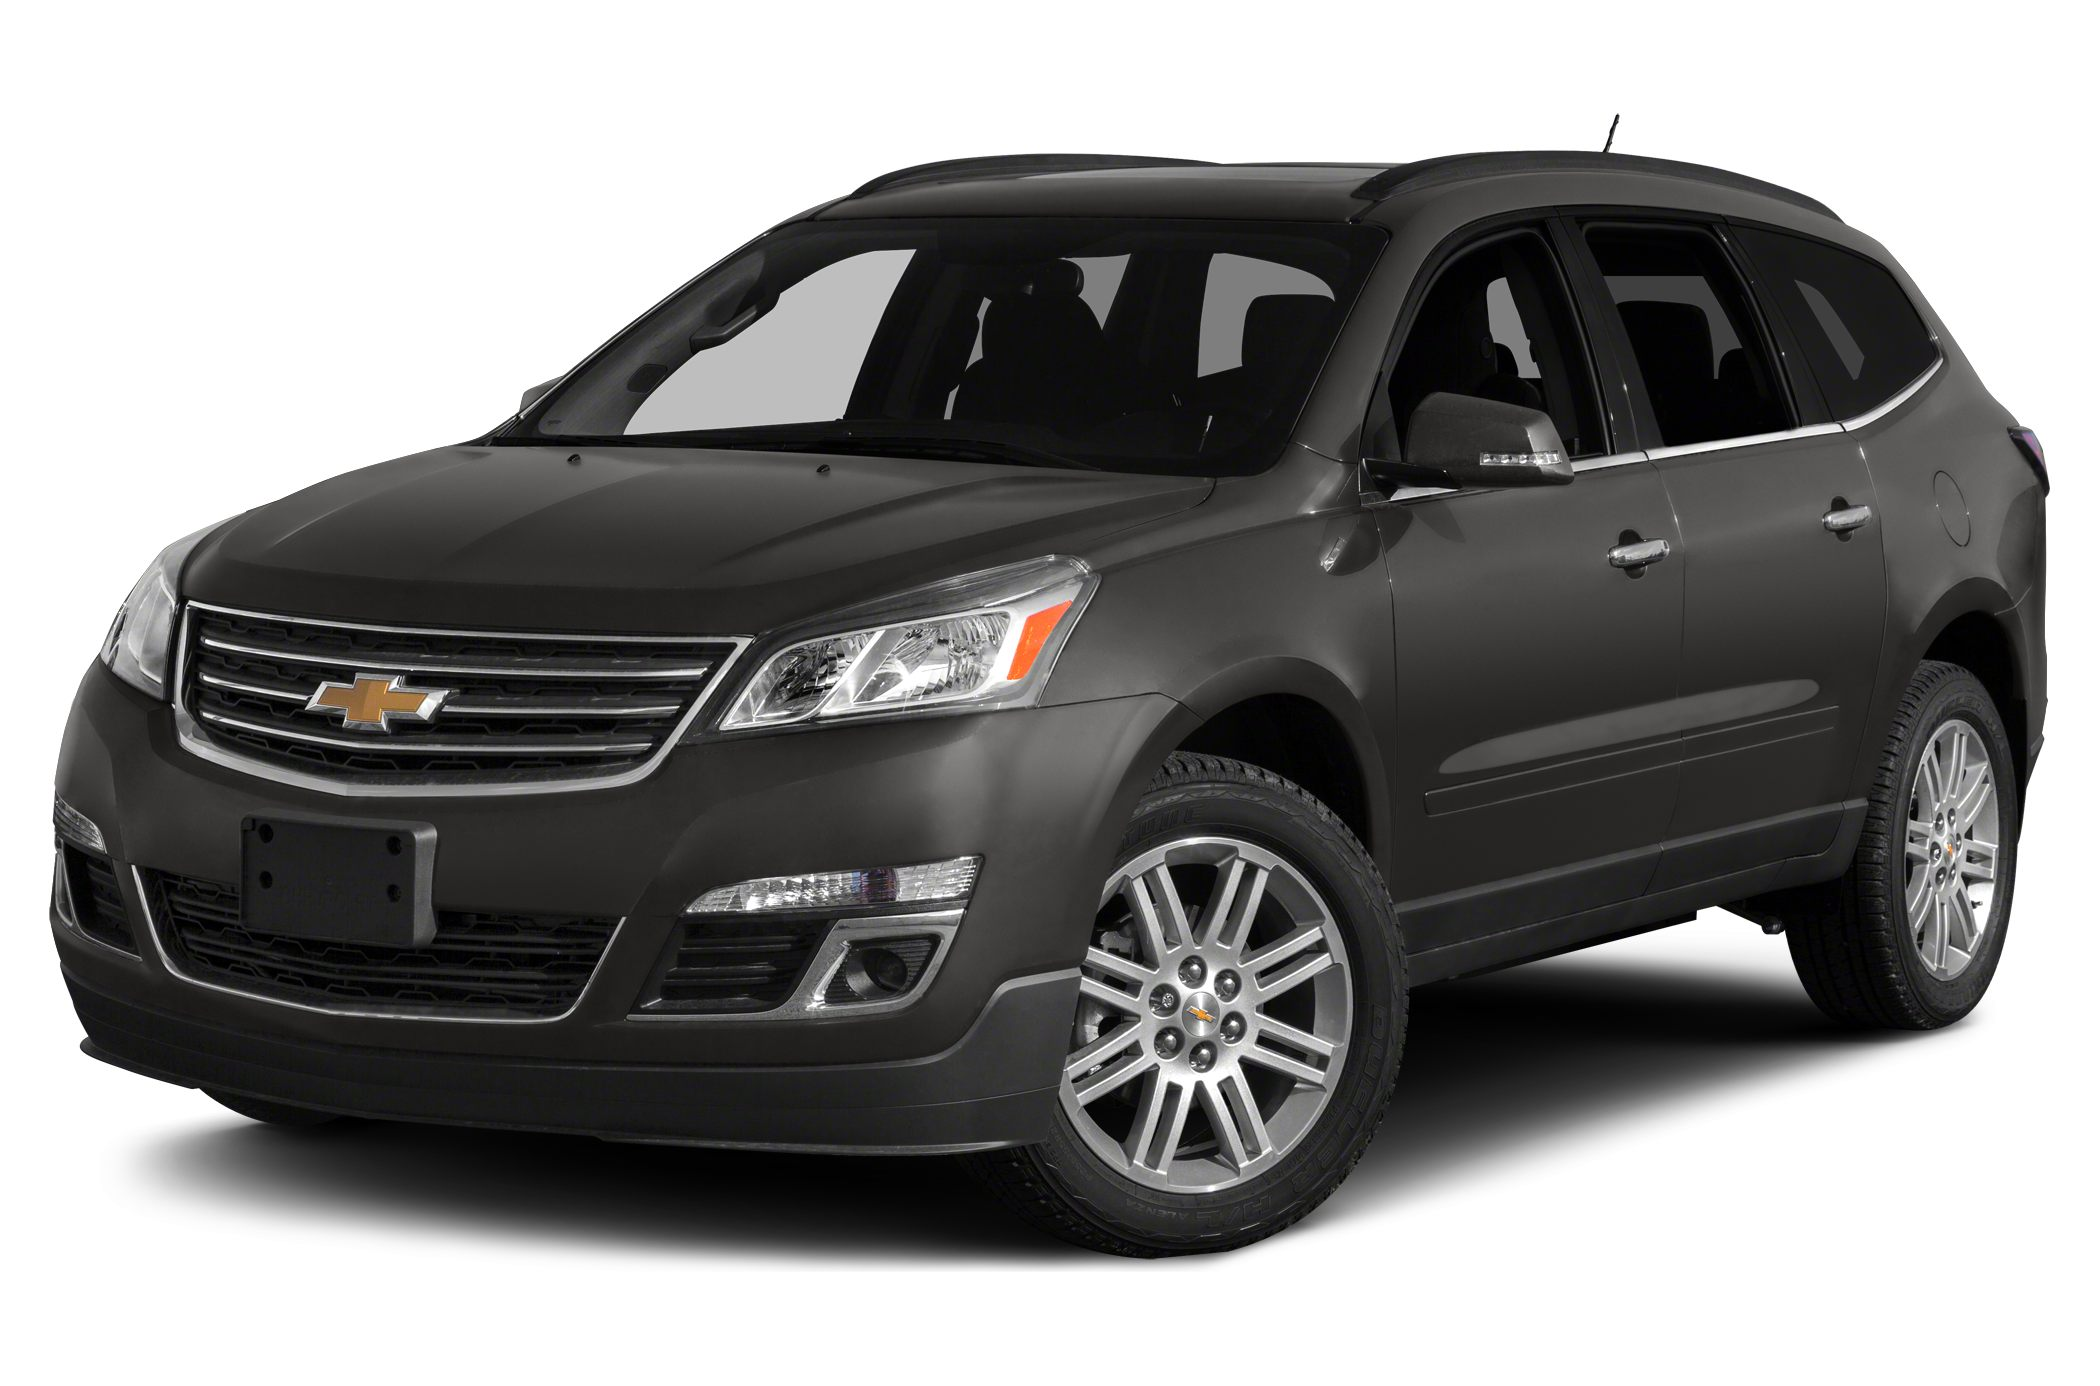 2015 Chevrolet Traverse 1LT SUV for sale in Abilene for $36,835 with 0 miles